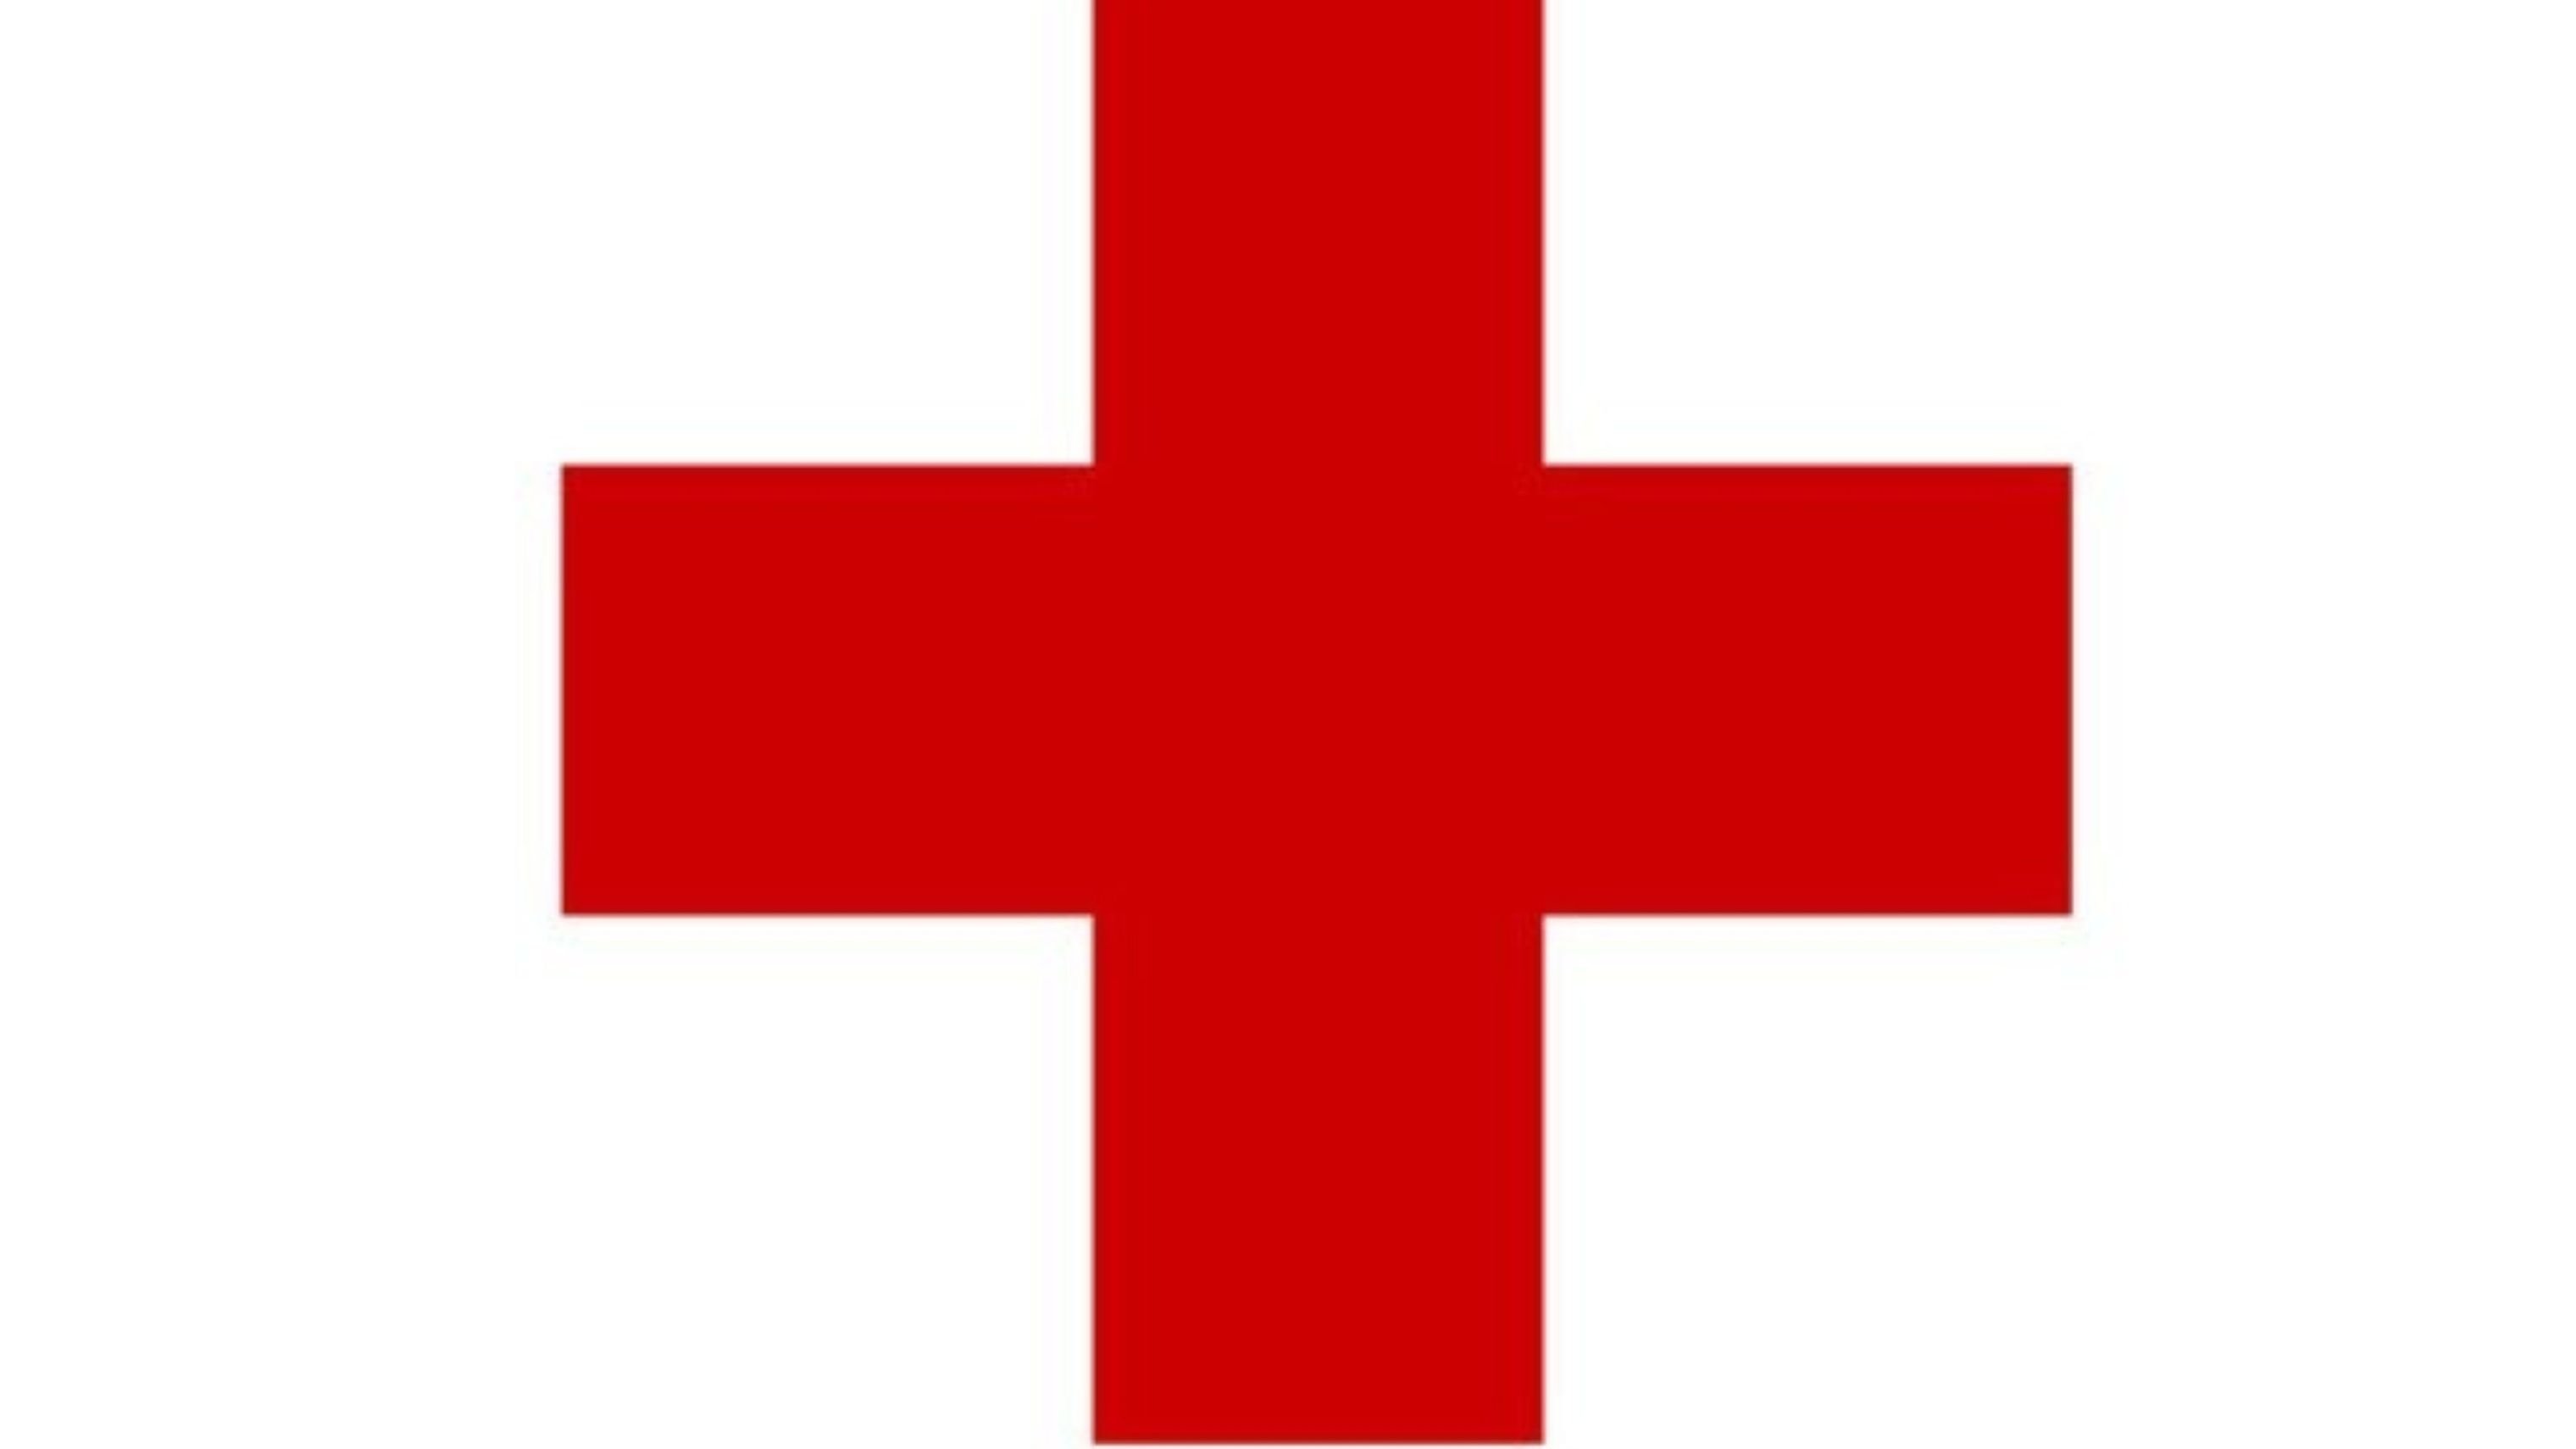 Logos for american red cross logo vector clipart free to use.